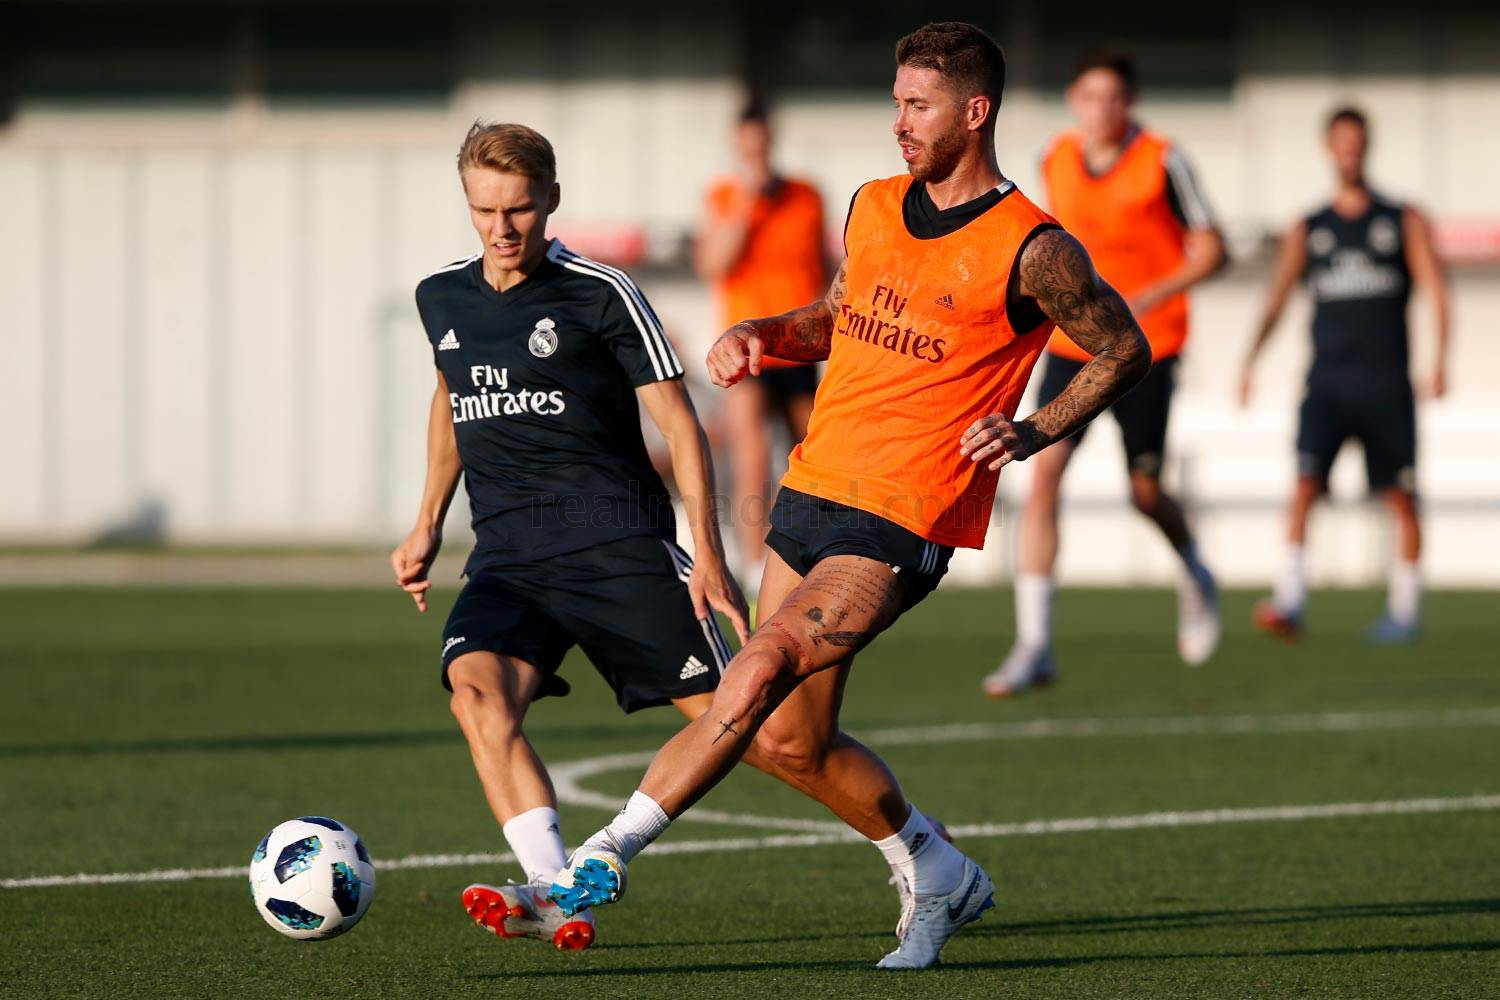 Real Madrid - Entrenamiento del Real Madrid - 10-08-2018